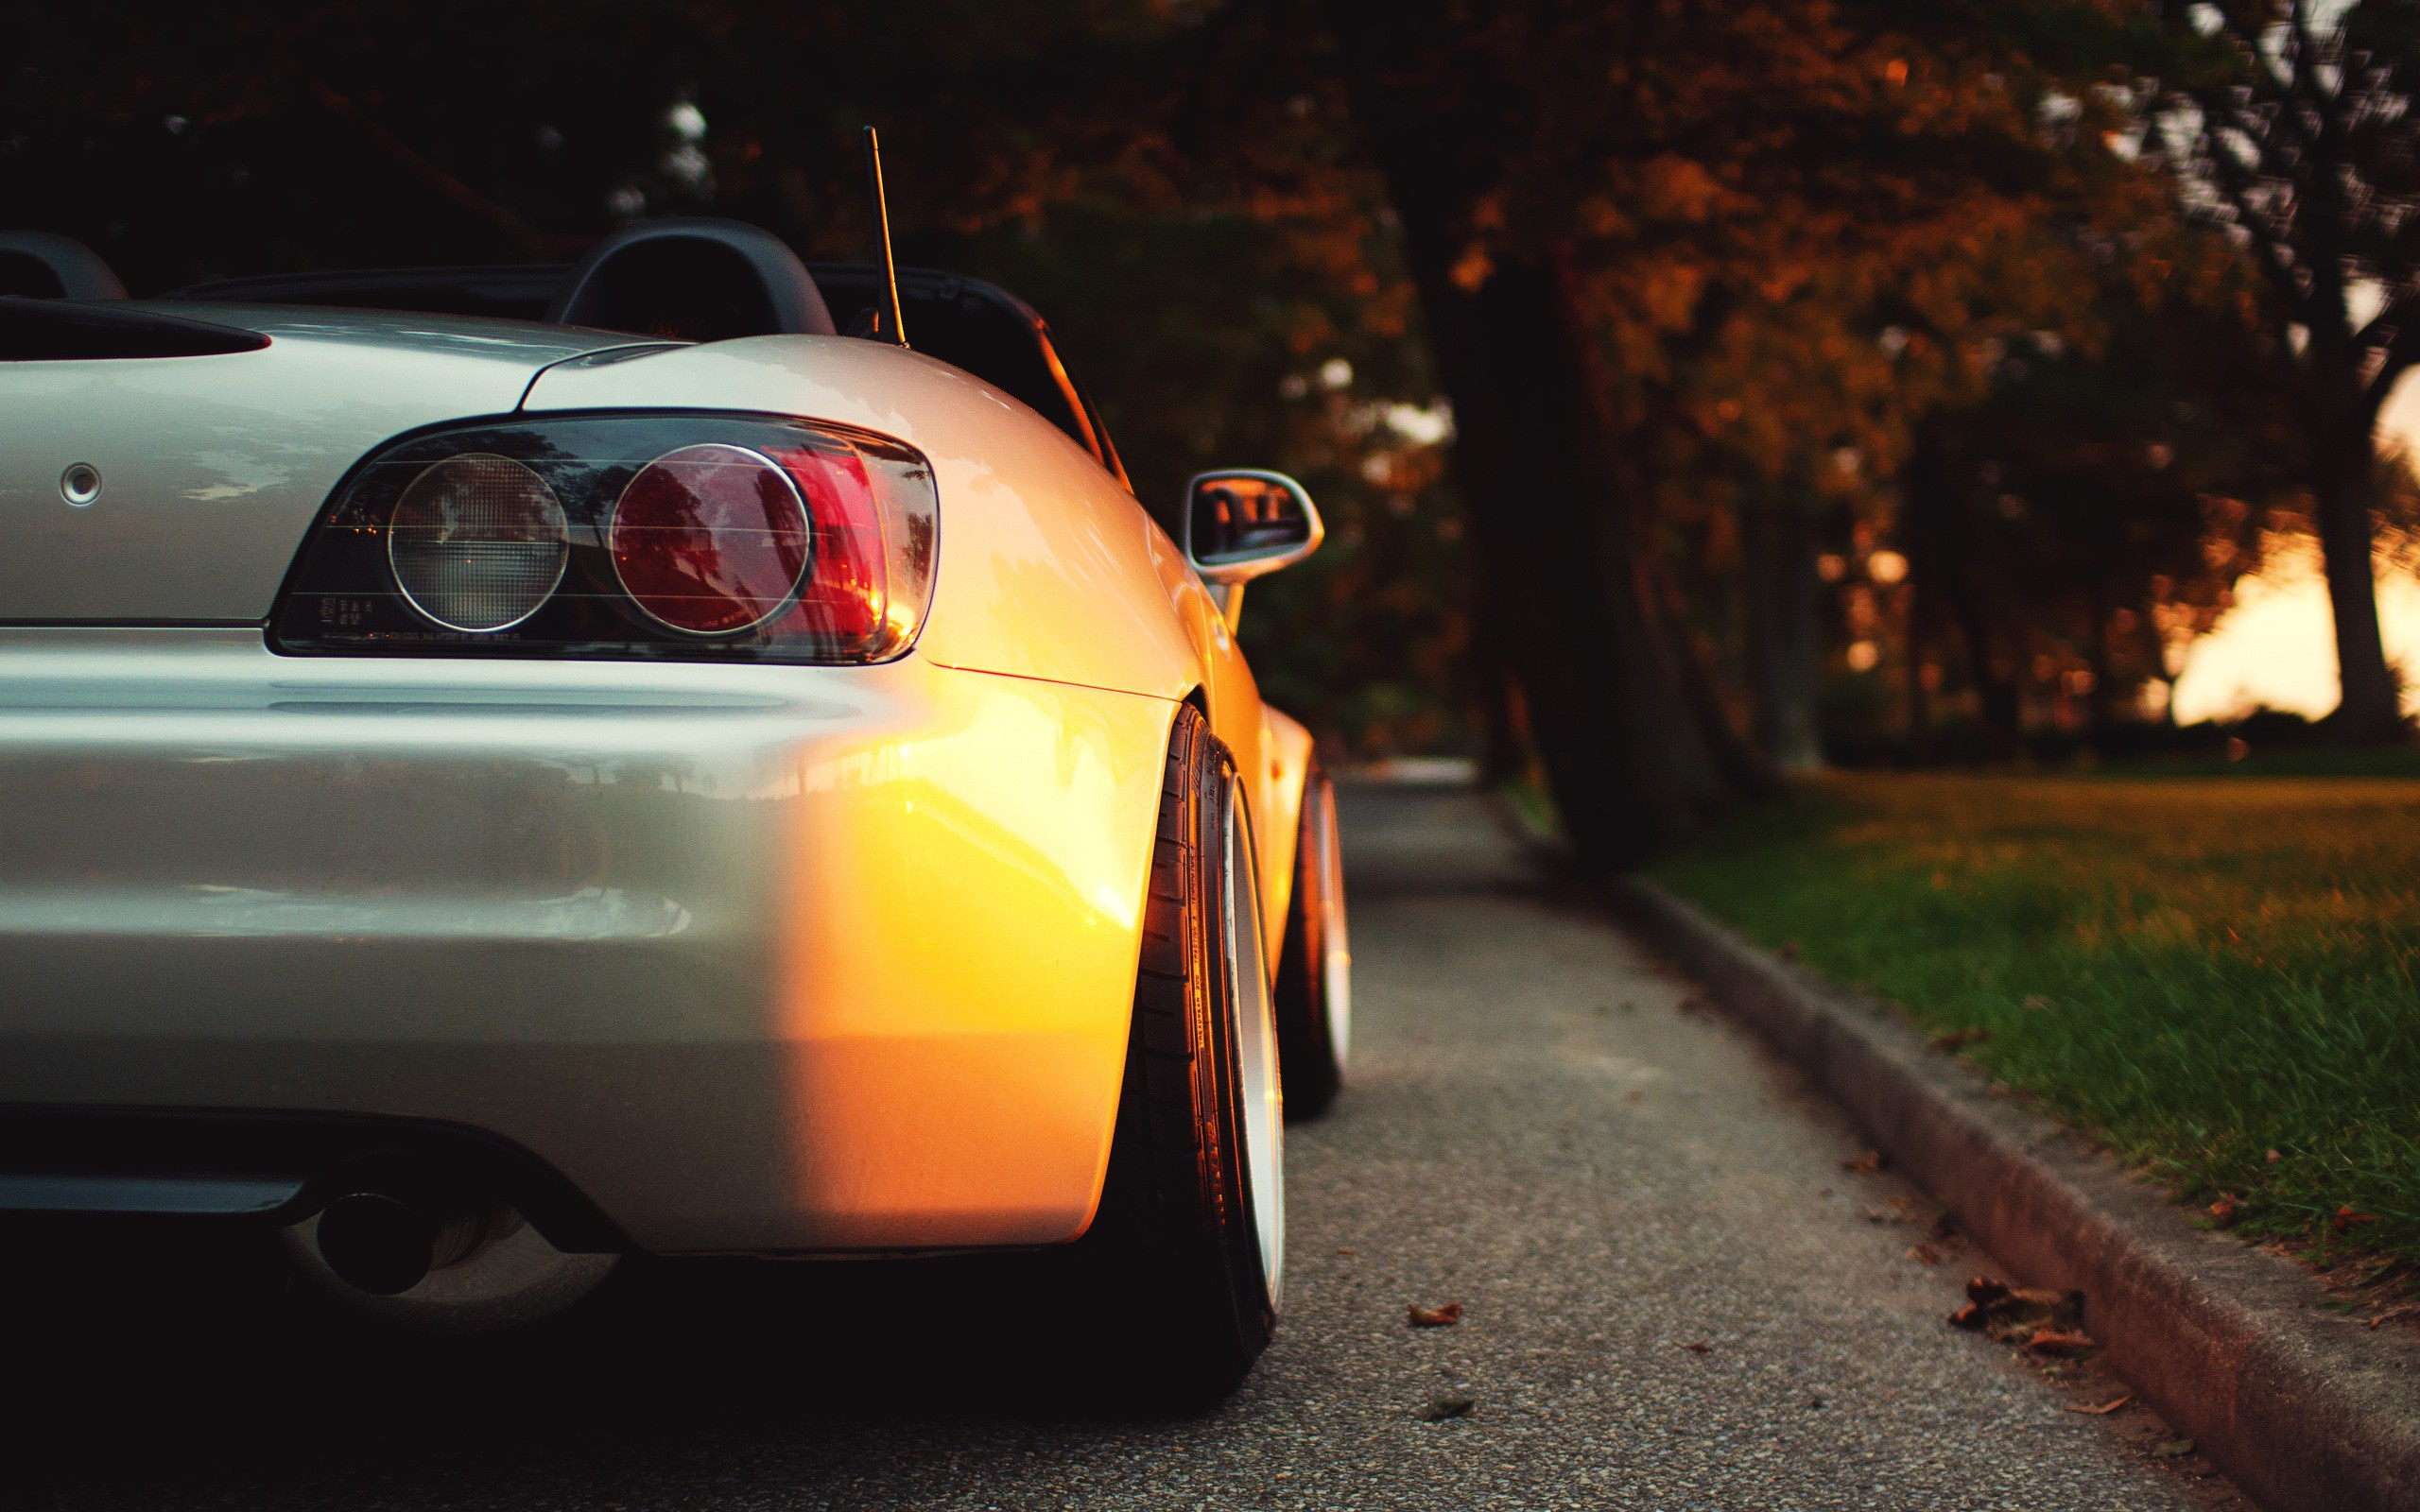 2560x1600 - Honda S2000 Wallpapers 26